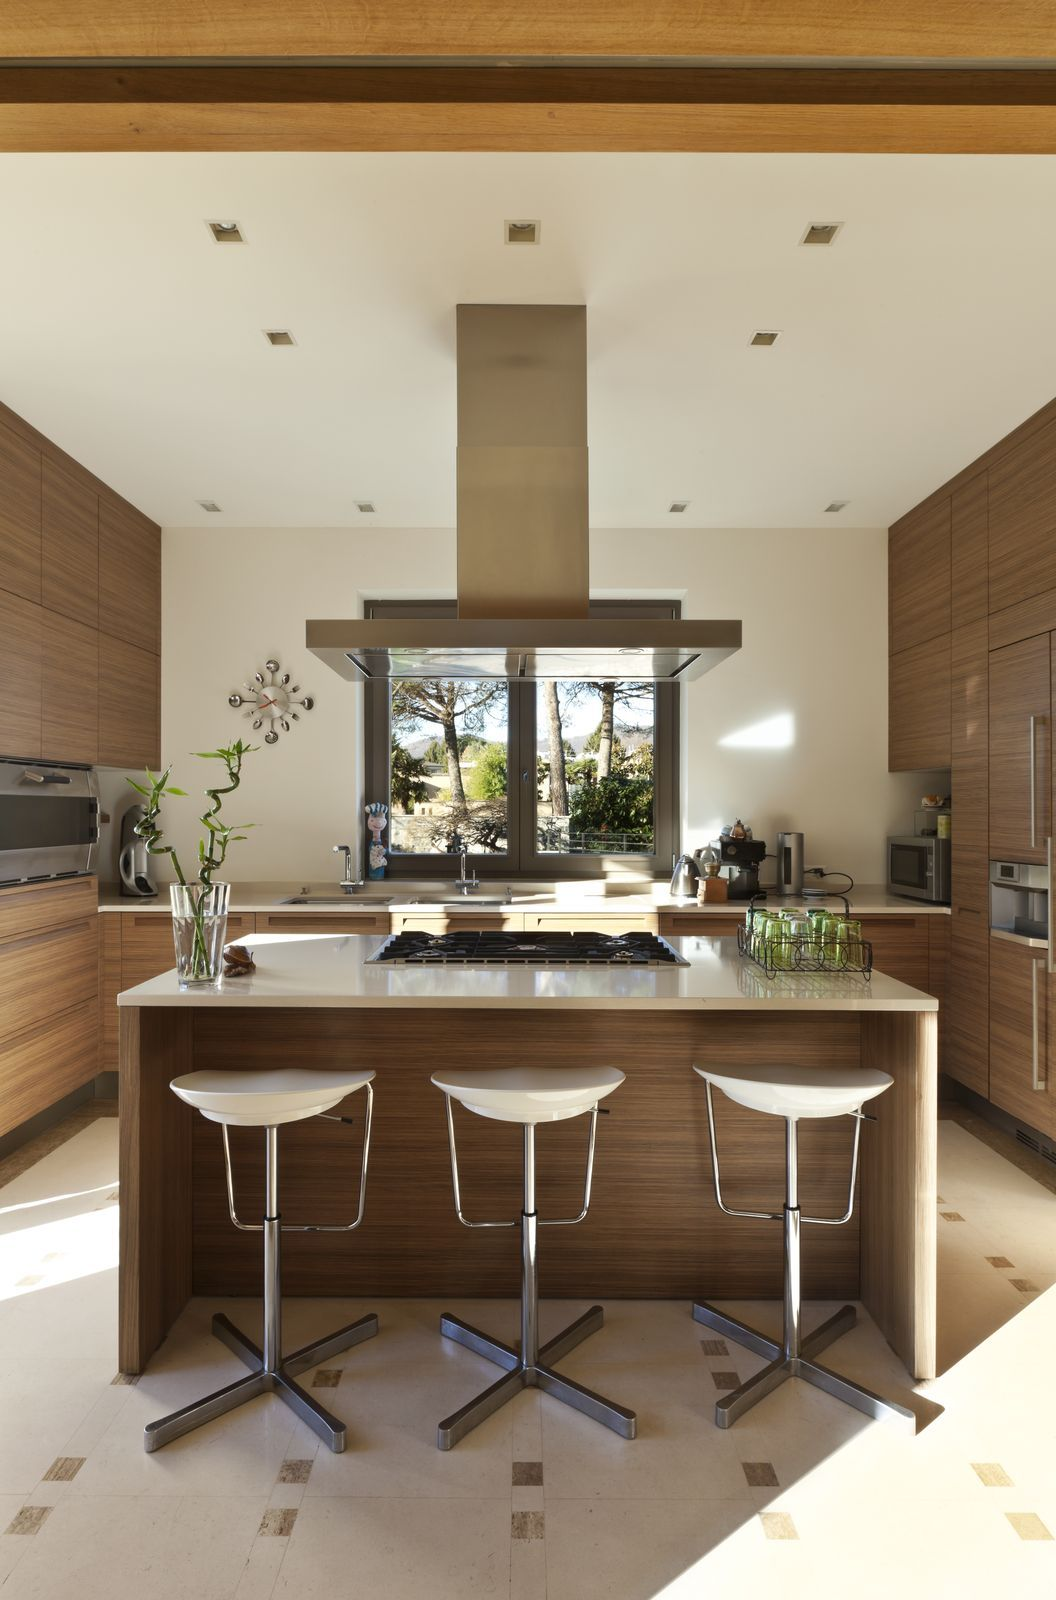 Modern Brown and White Bistro Style Kitchen with Bar seating